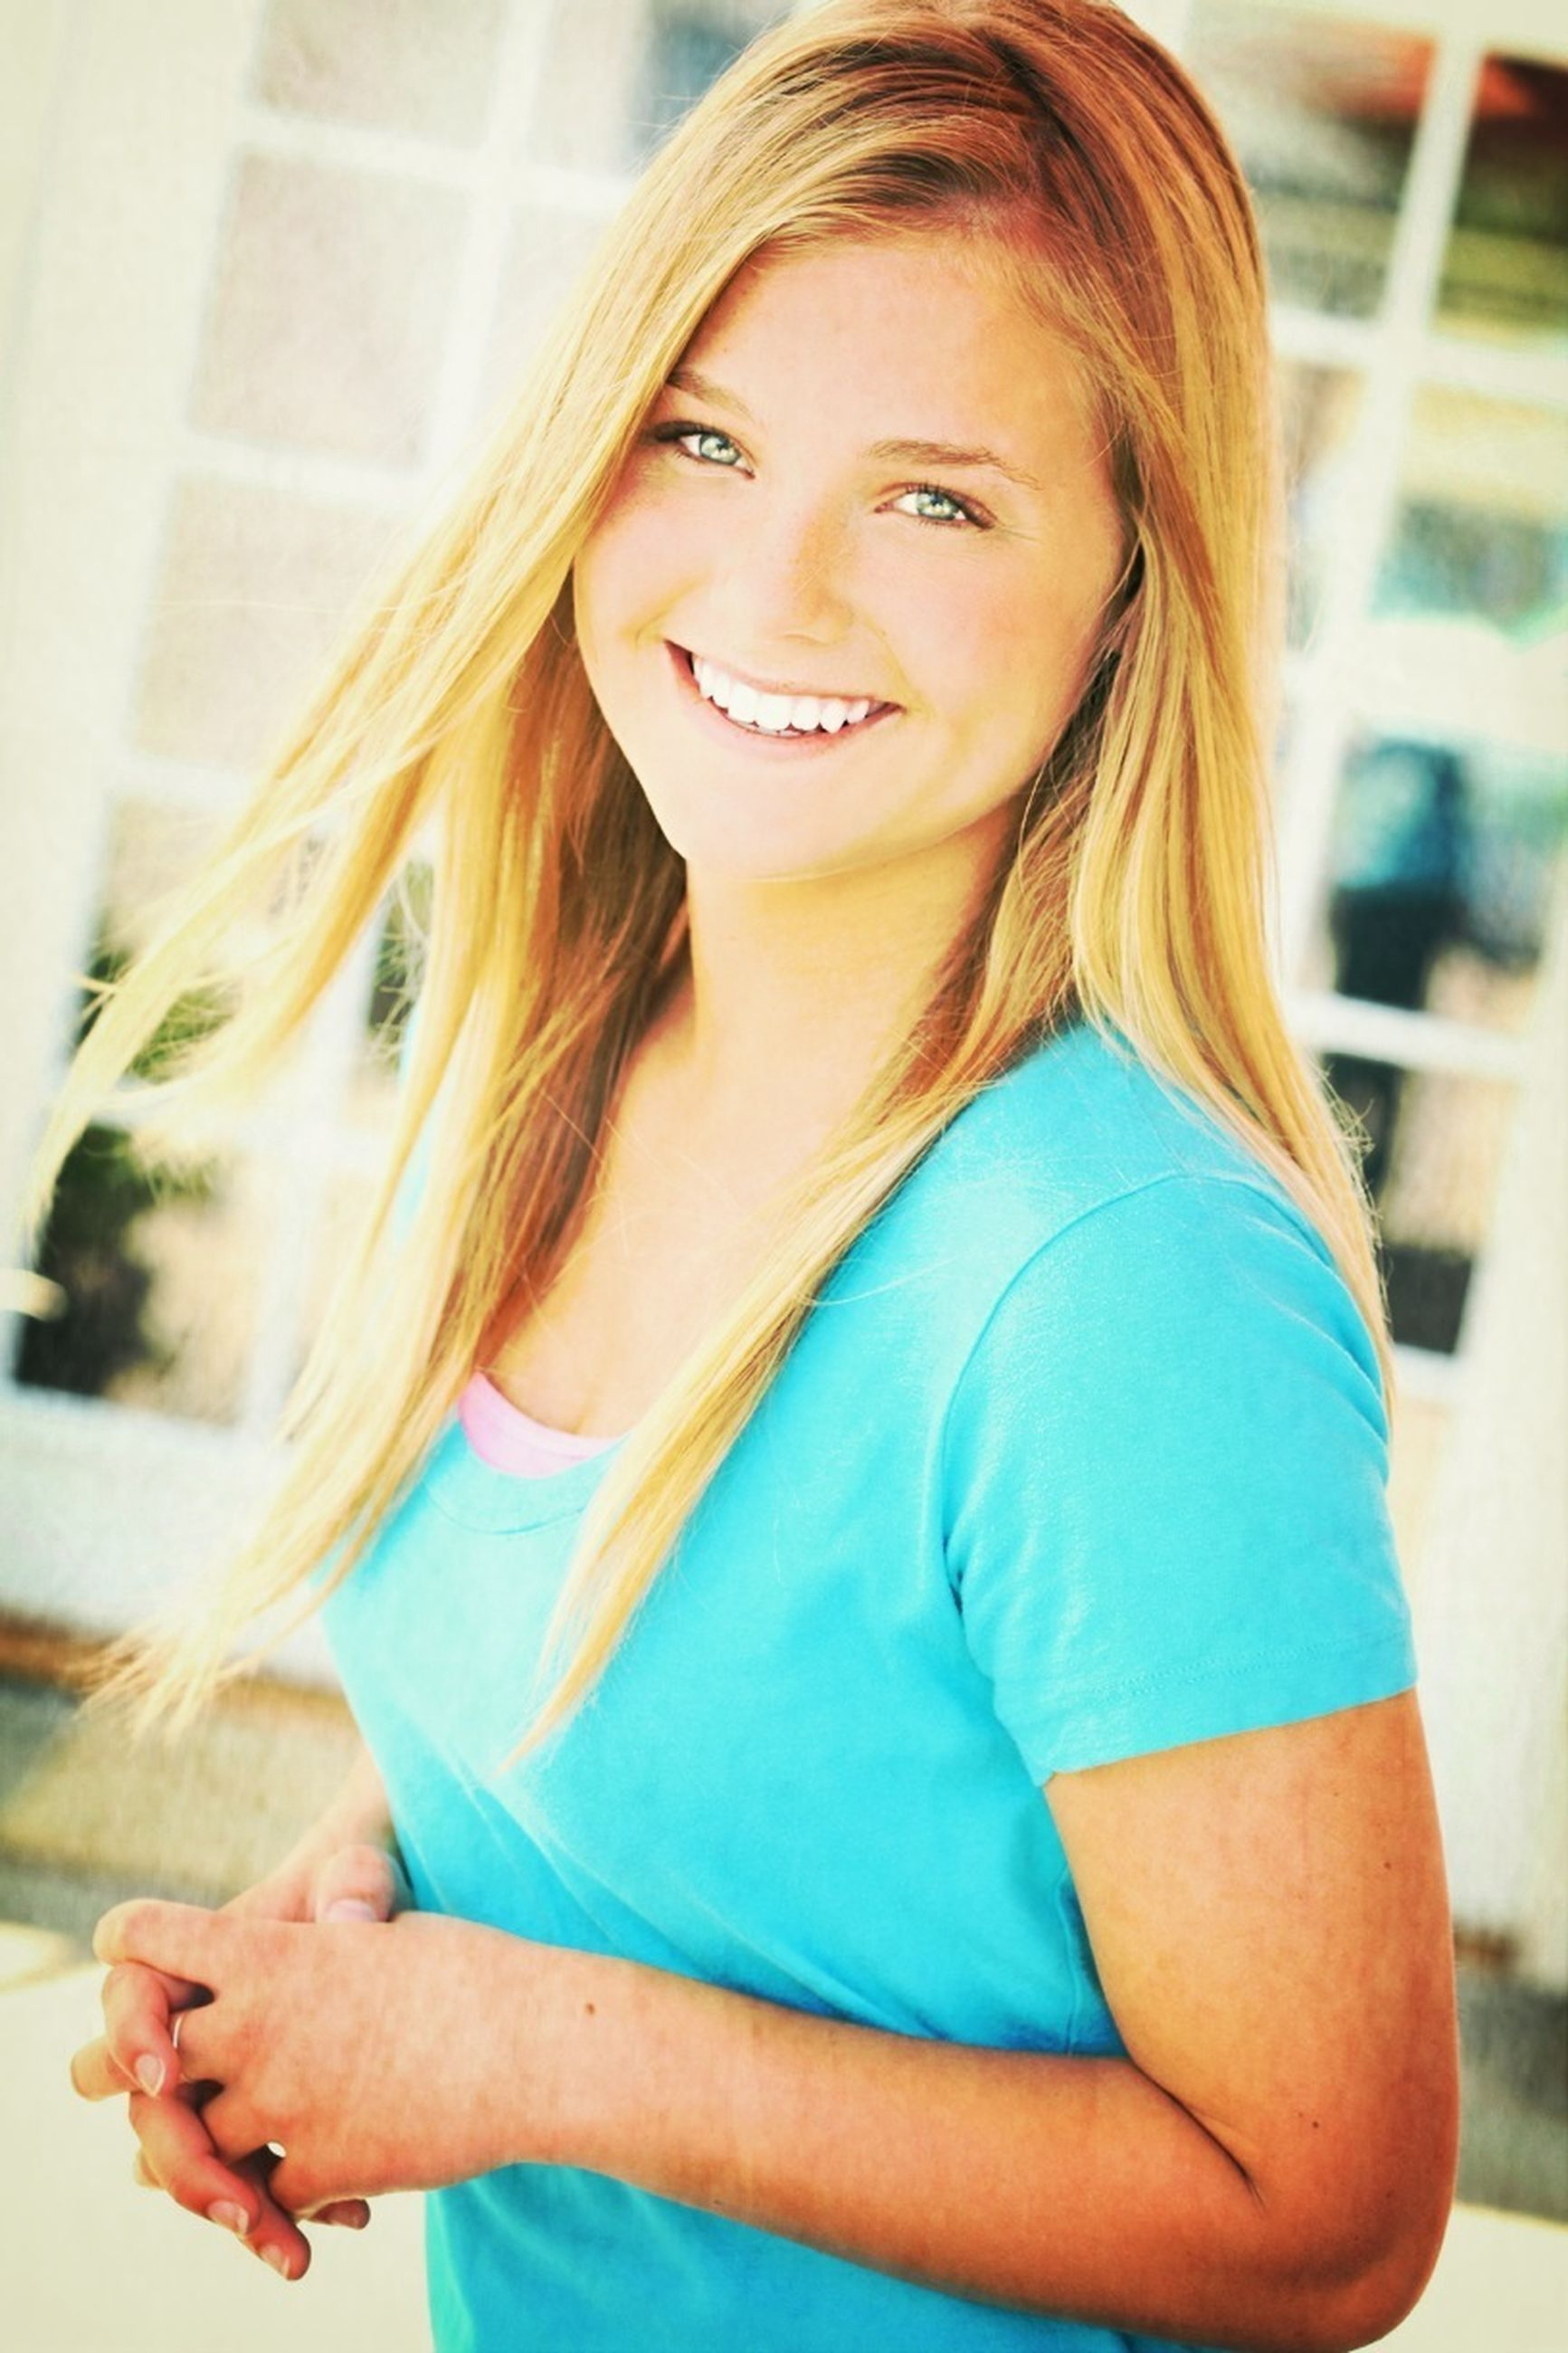 person, lifestyles, casual clothing, portrait, leisure activity, smiling, looking at camera, front view, waist up, happiness, childhood, focus on foreground, elementary age, young adult, three quarter length, blond hair, headshot